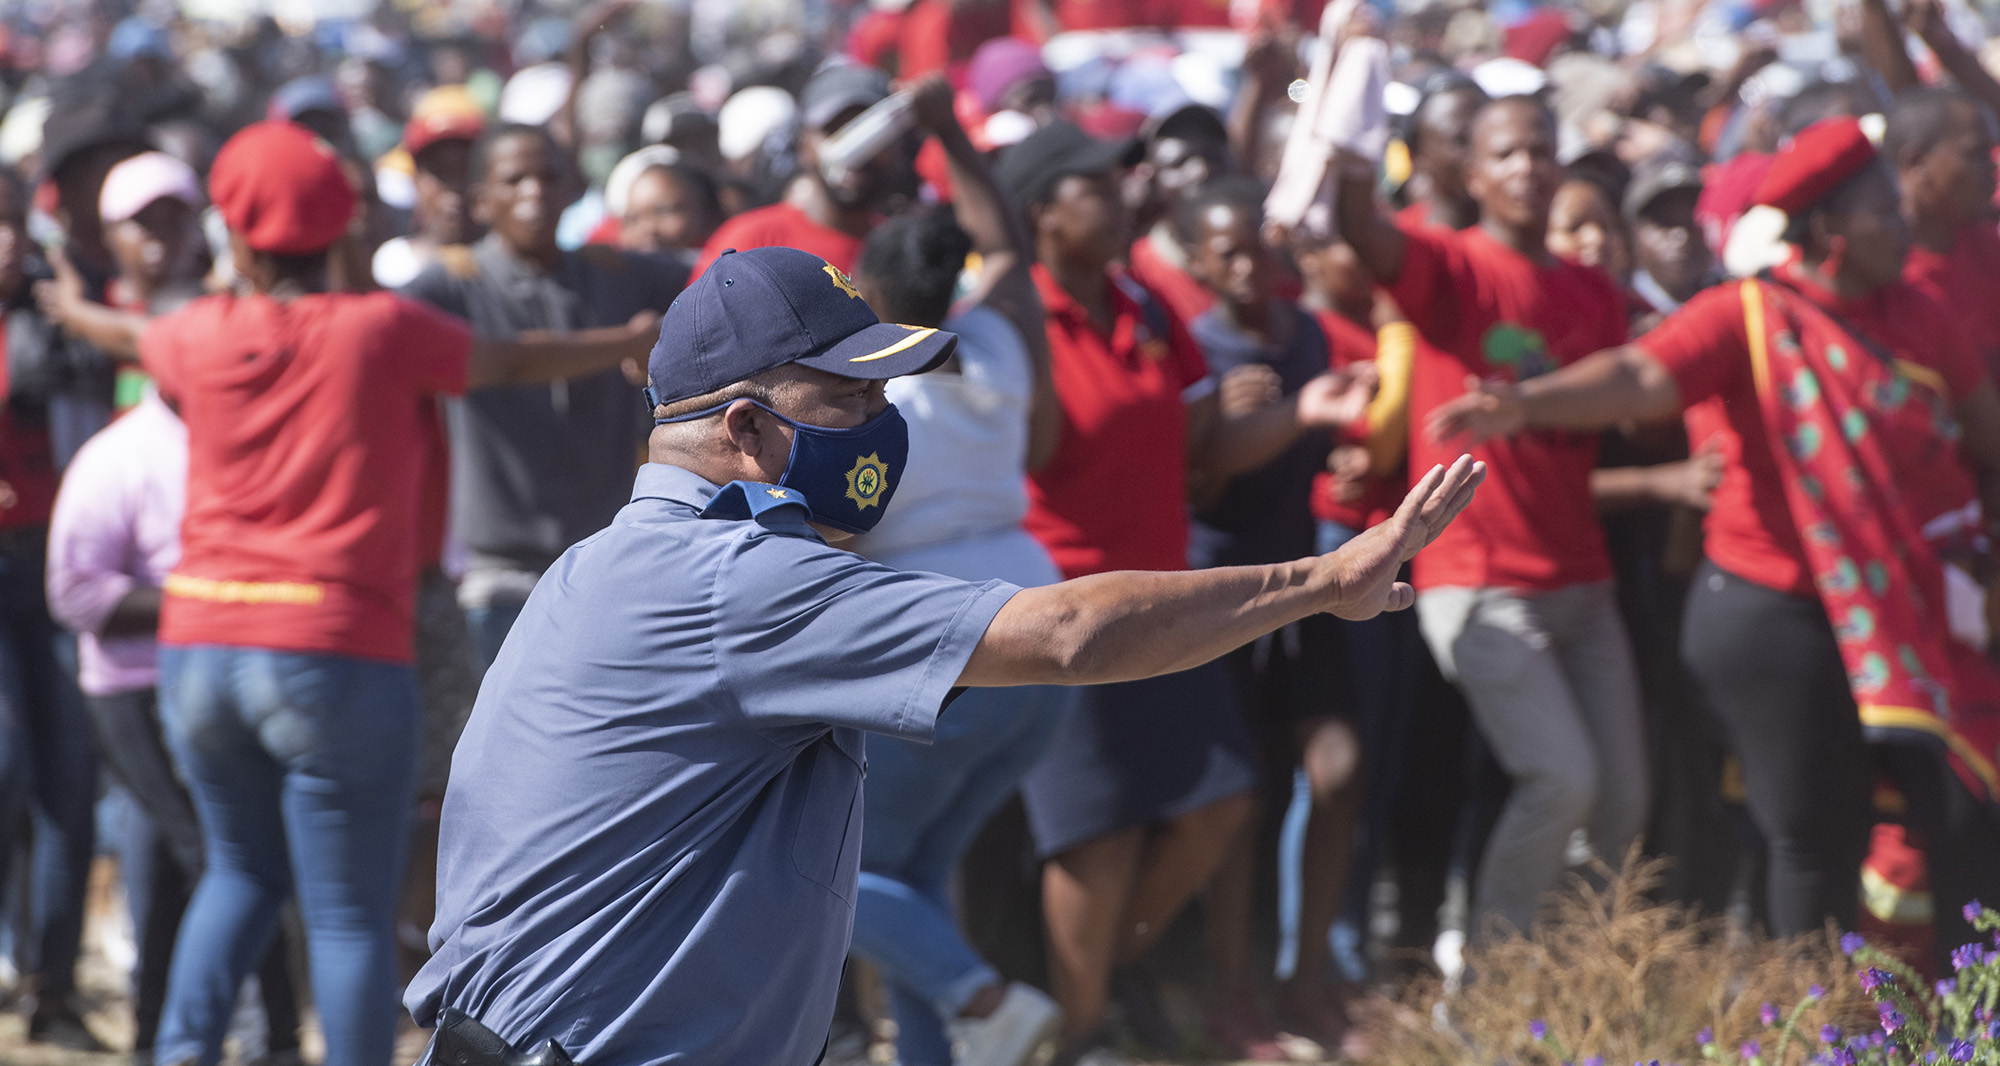 Tensions mount between EFF and police during another Friday protest in Cape Town - Daily Maverick